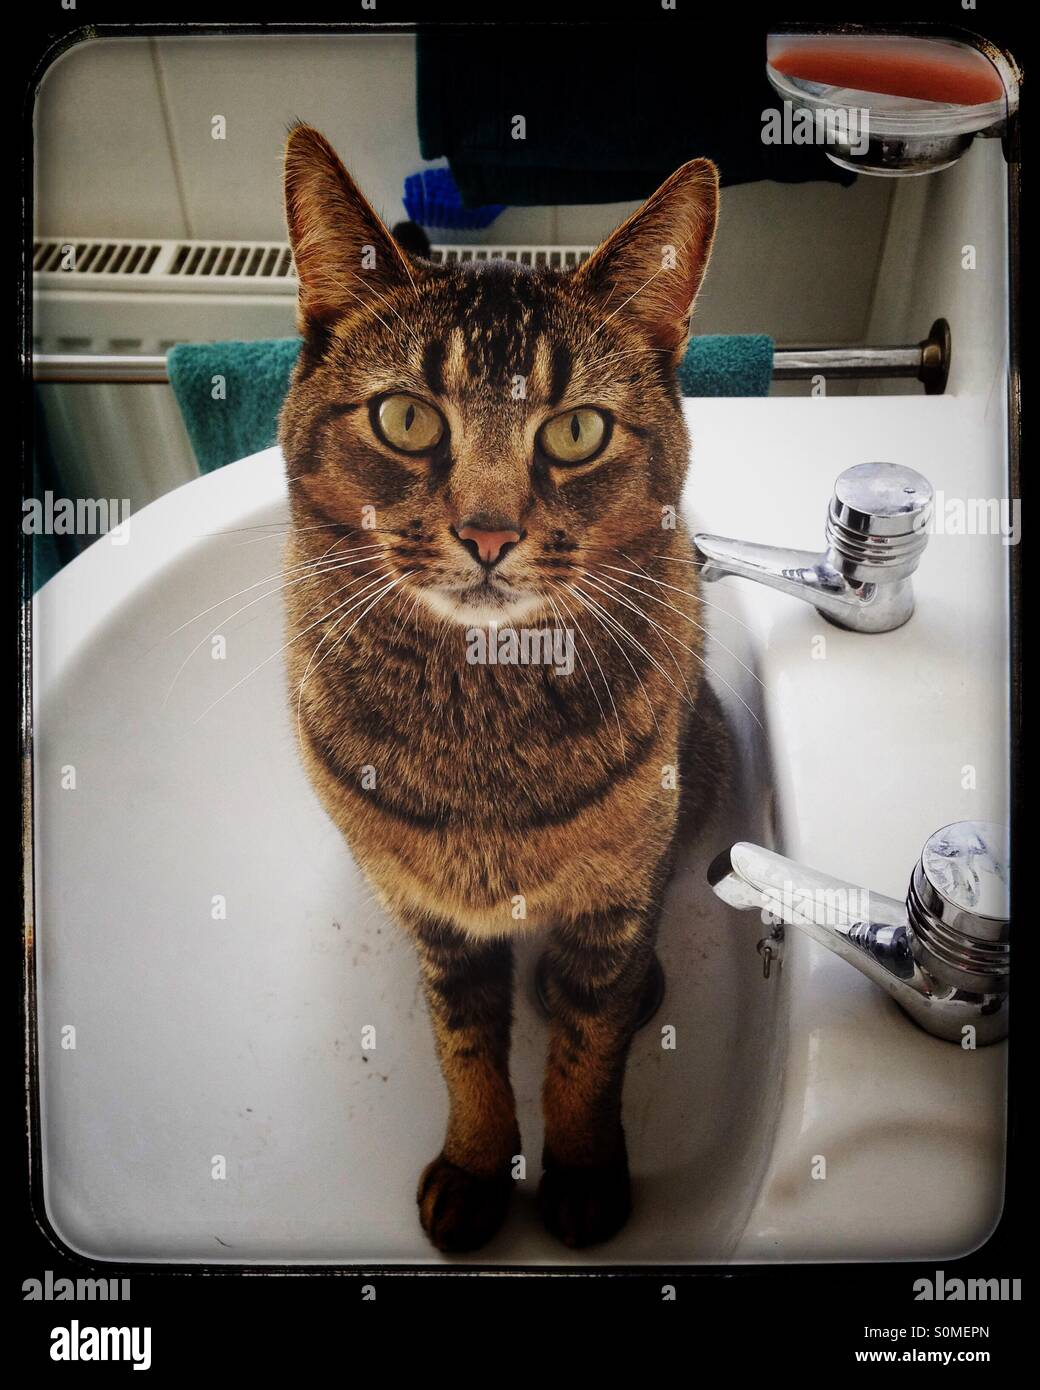 Angry looking cat sitting in a wash basin looking at the camera - Stock Image